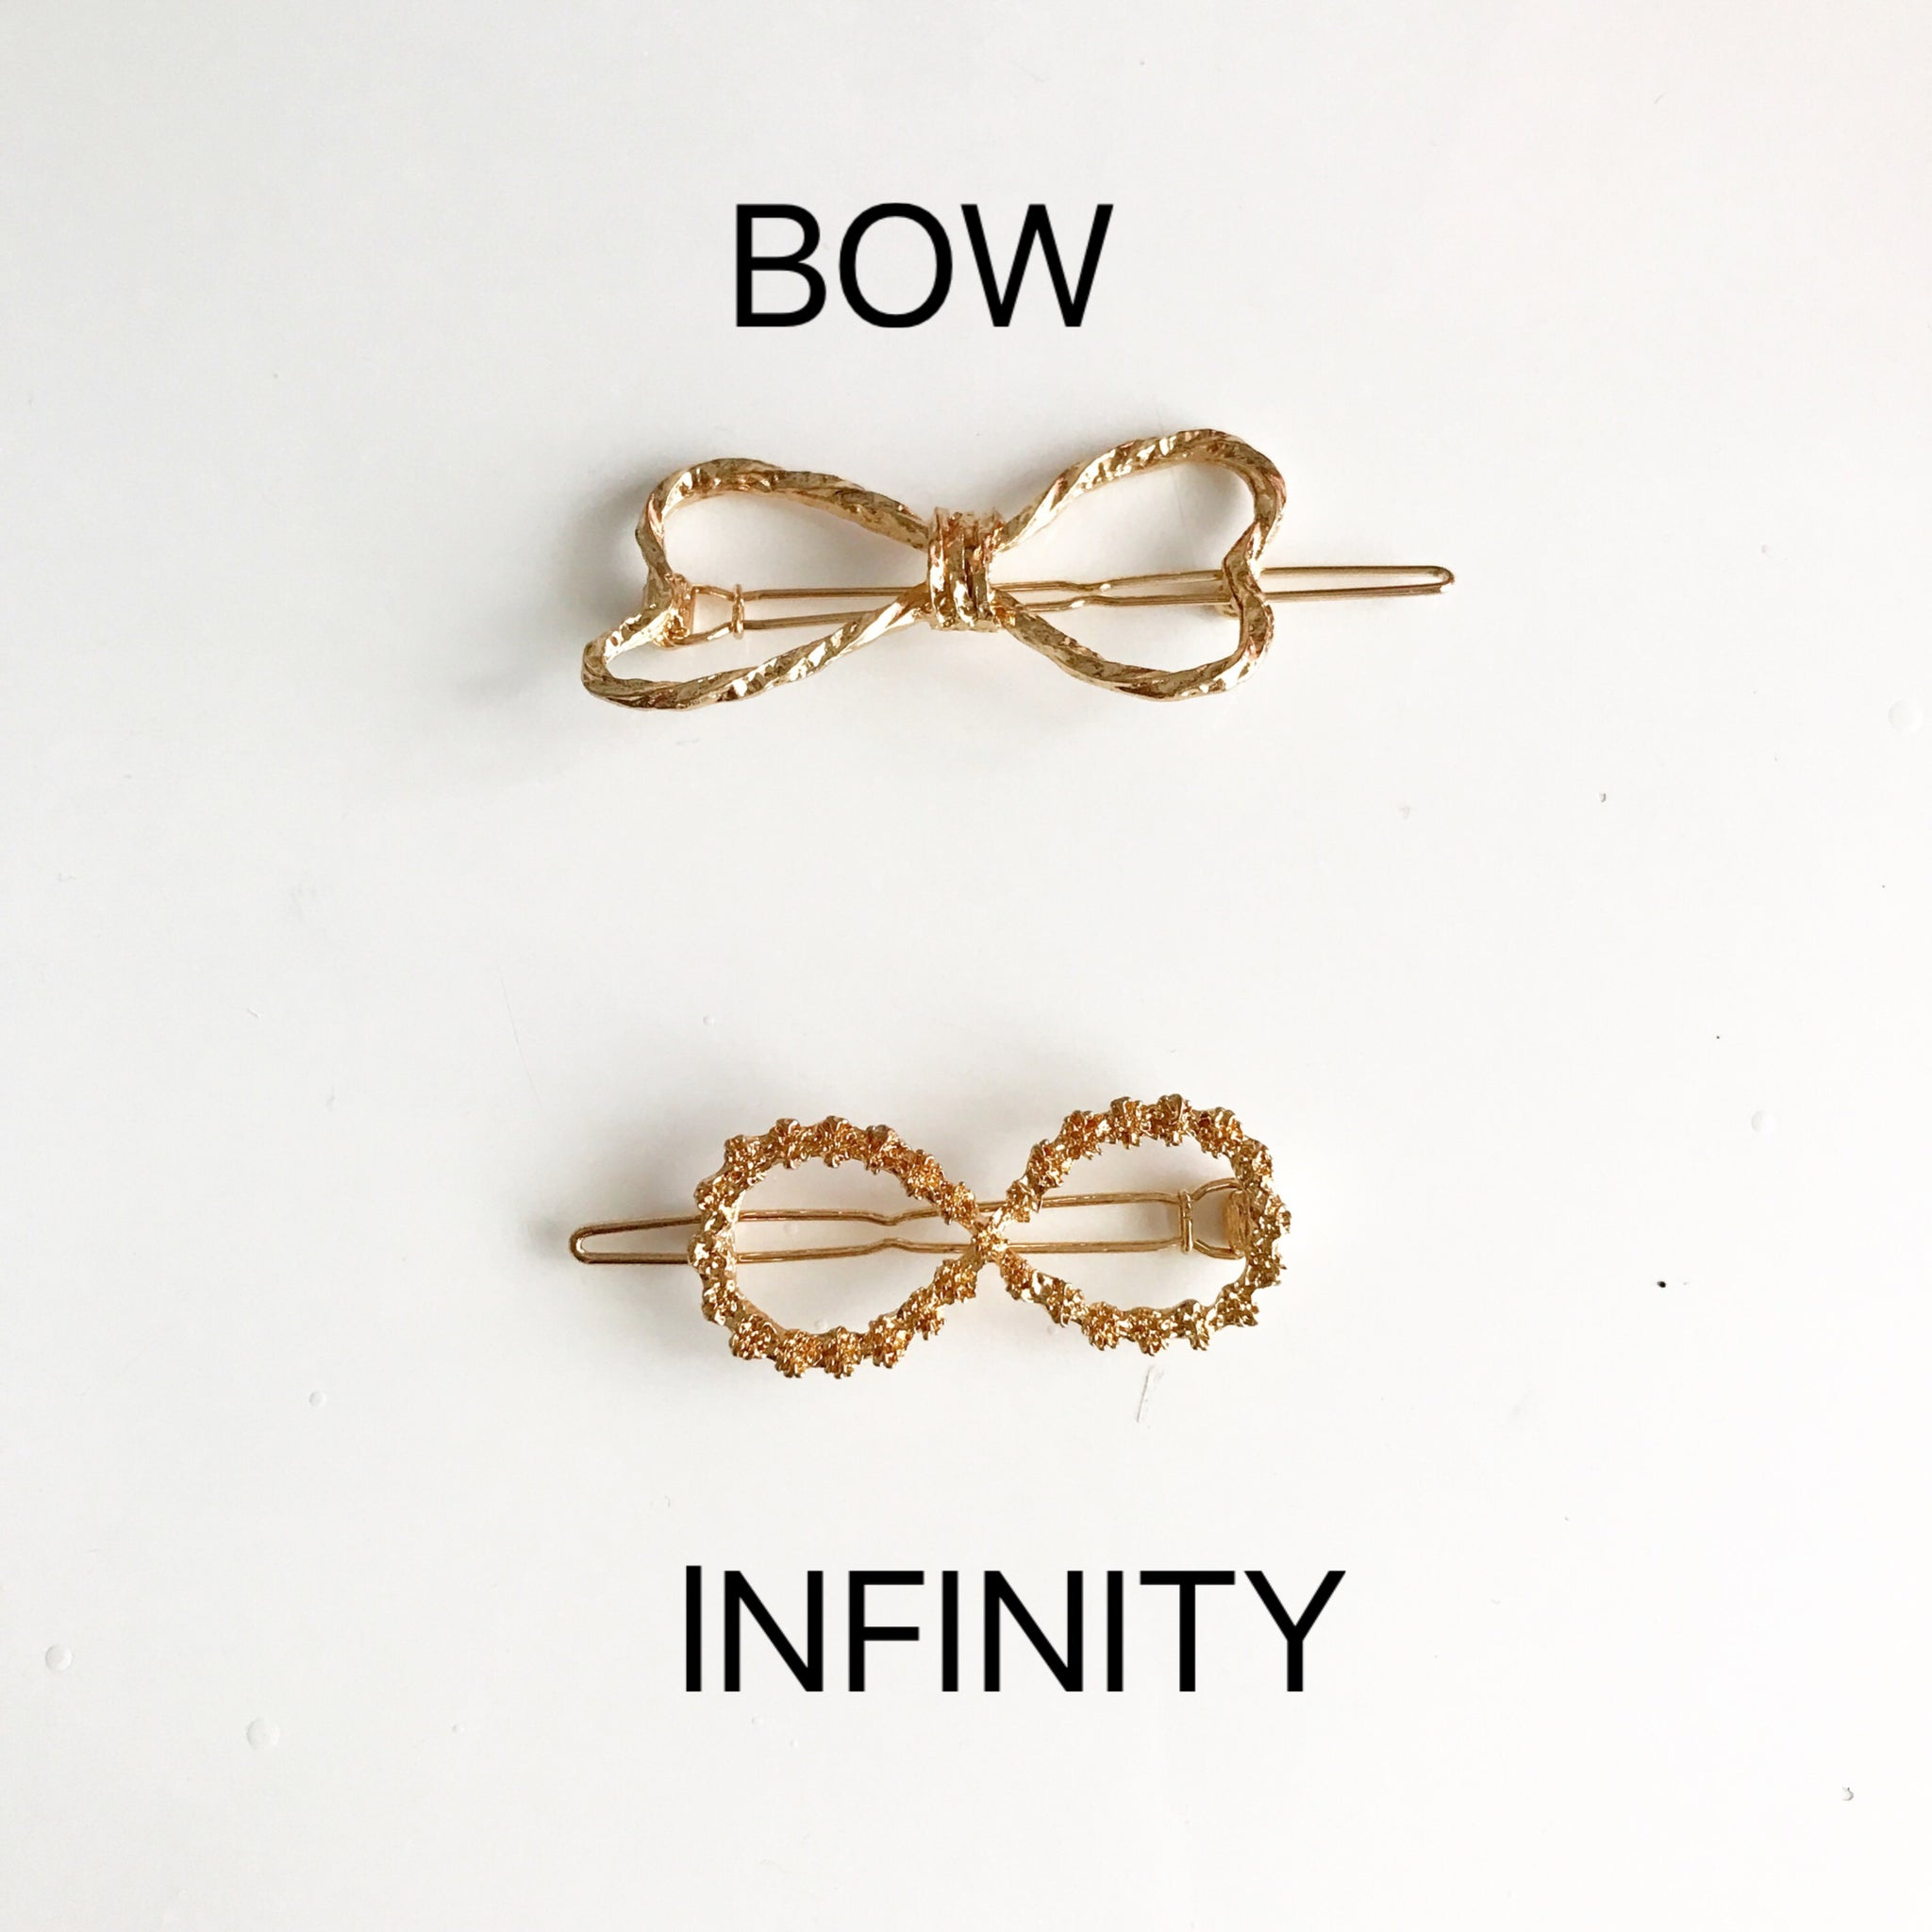 QUIRKY HAIR CLIP - Flauntandfun